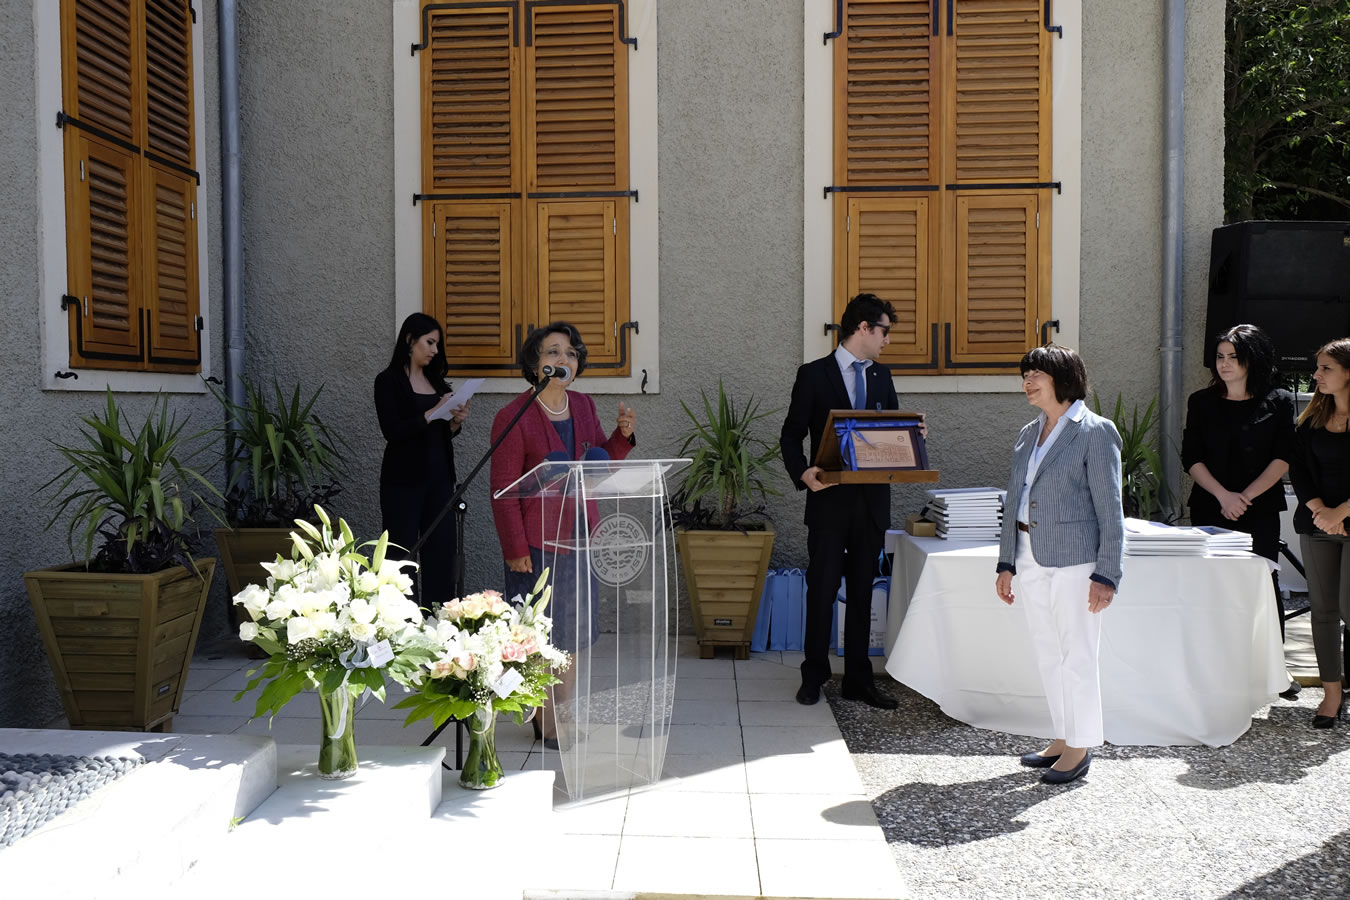 Goknil recieves her commemoration plaque a t the inaguration of the museum for children's books illustrastions